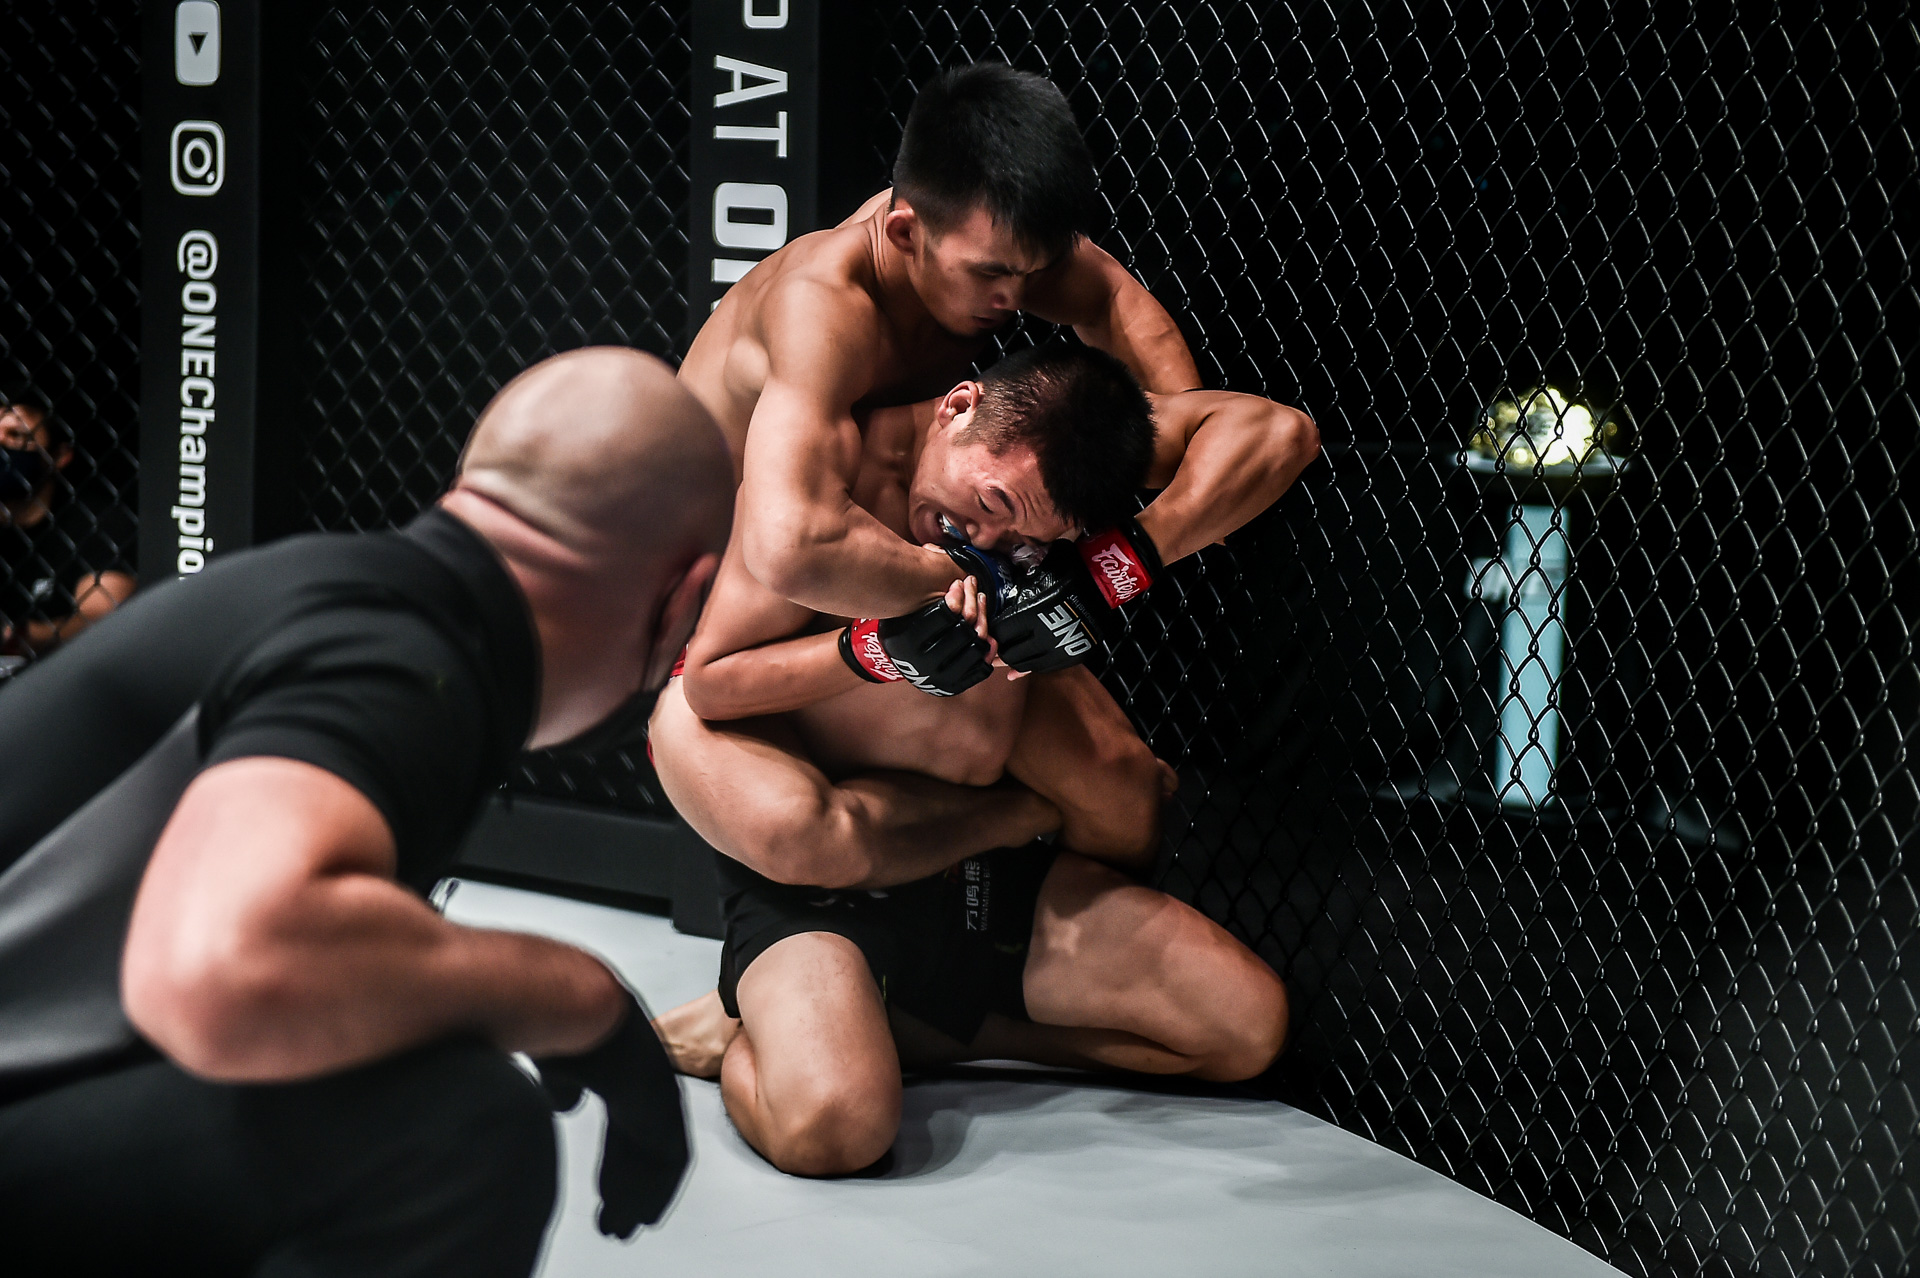 ONE-Battleground-Jeremy-Pacatiw-def-Chen-Rui After Pacatiw, Olsim wins, Jhanlo Sangiao rares to enter ONE circle Mixed Martial Arts News ONE Championship  - philippine sports news